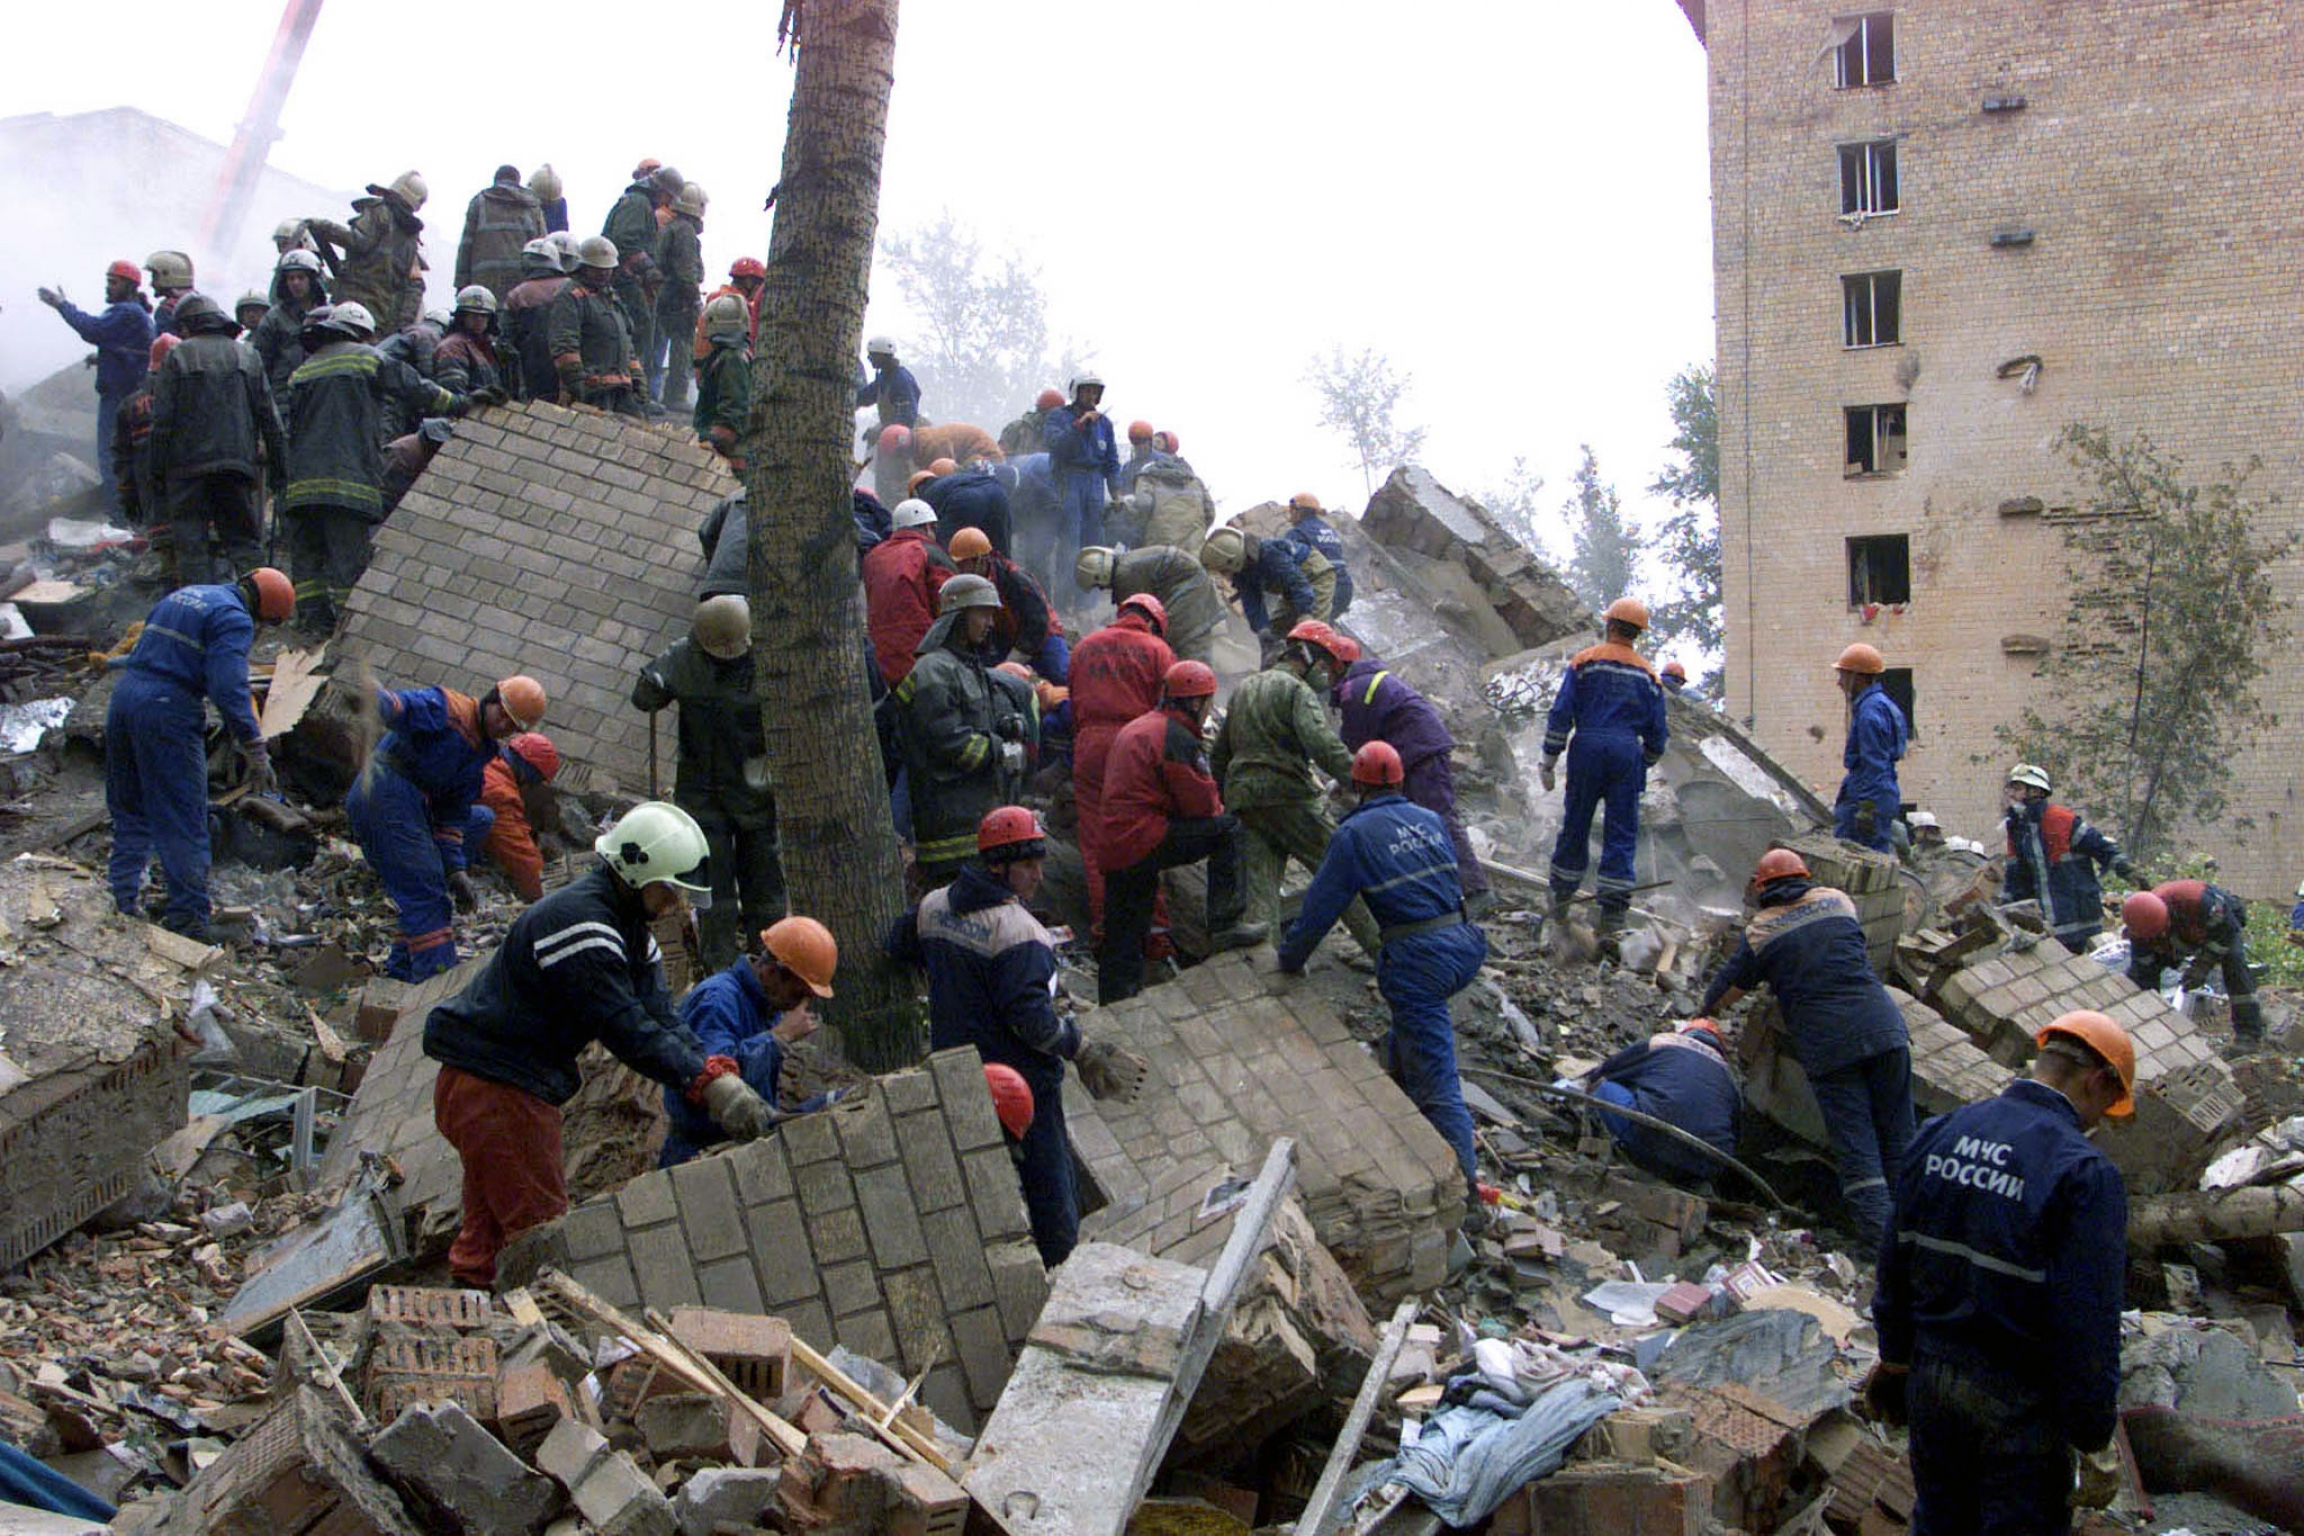 A crowd of people wearing hard hats shift through the rubble of a building